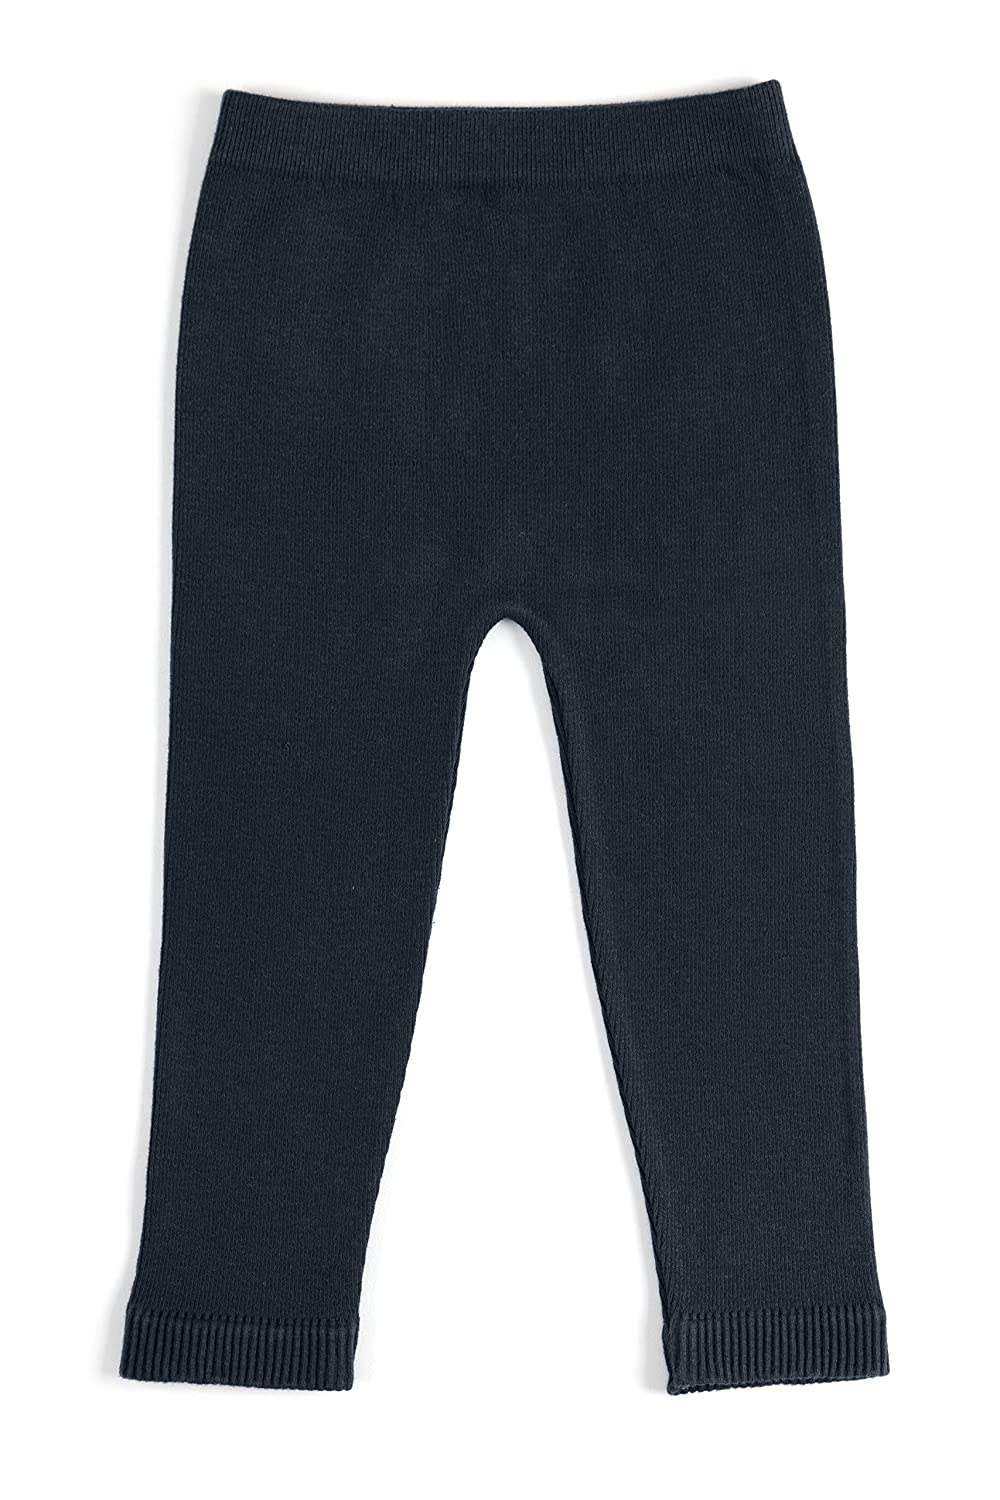 EMEM Unisex Baby Seamless Cotton Leggings in Solid Ribbons or Buttons Bows